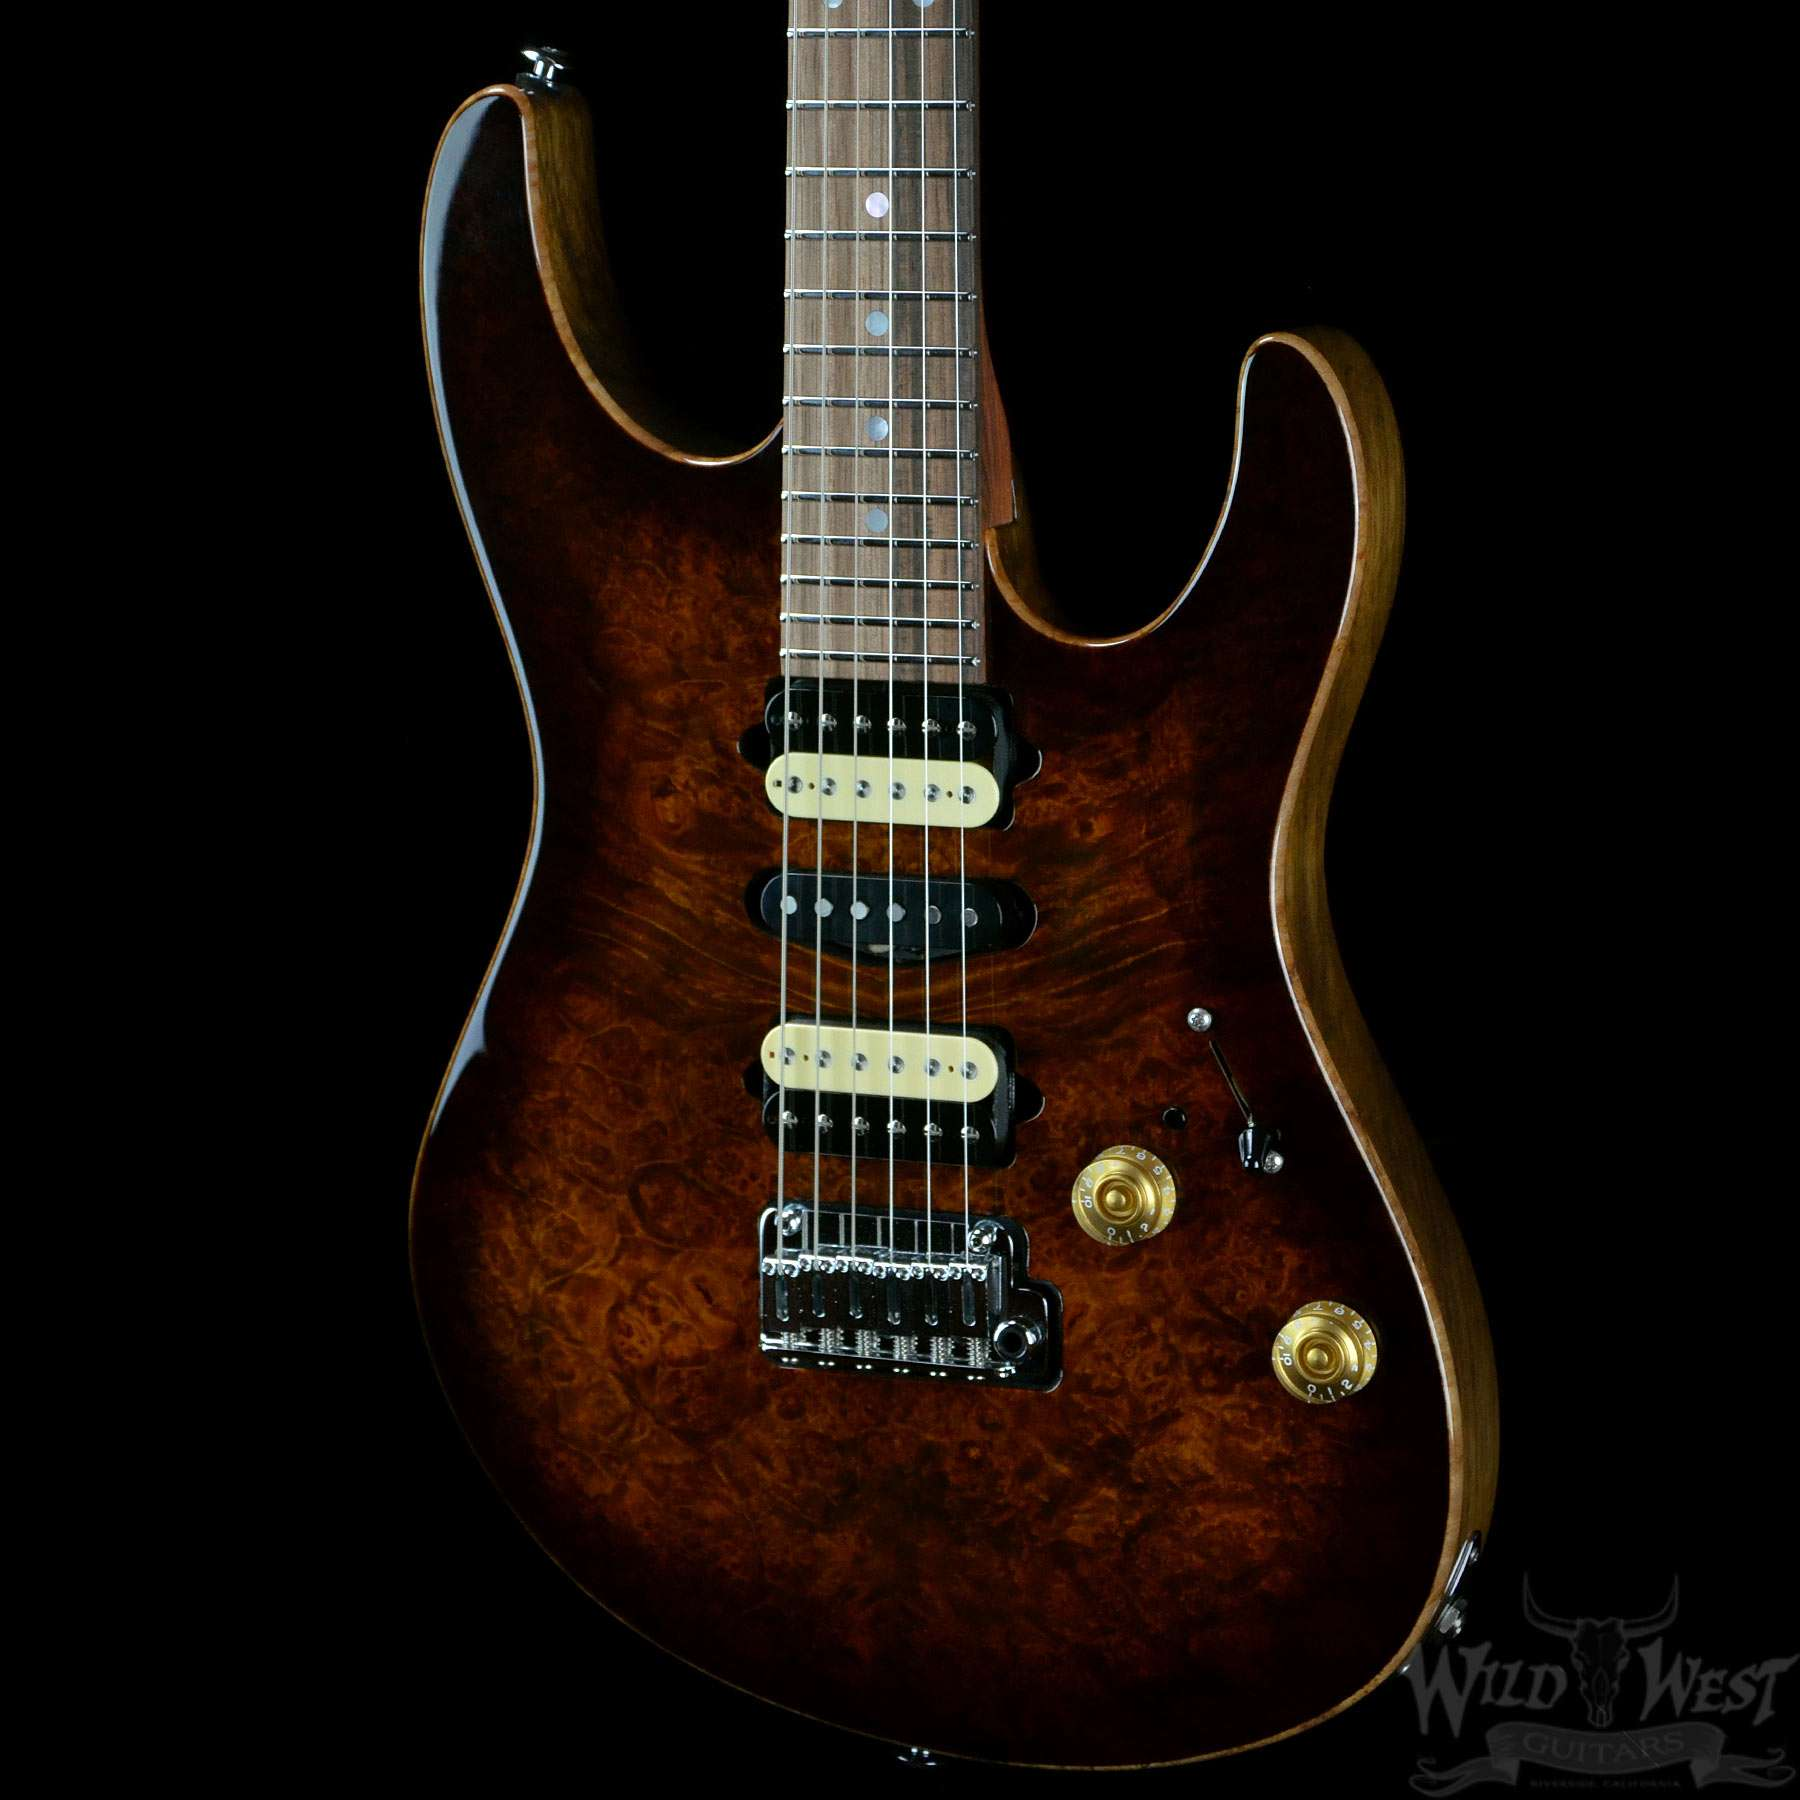 suhr custom modern burl maple bengal burst wild west guitars. Black Bedroom Furniture Sets. Home Design Ideas